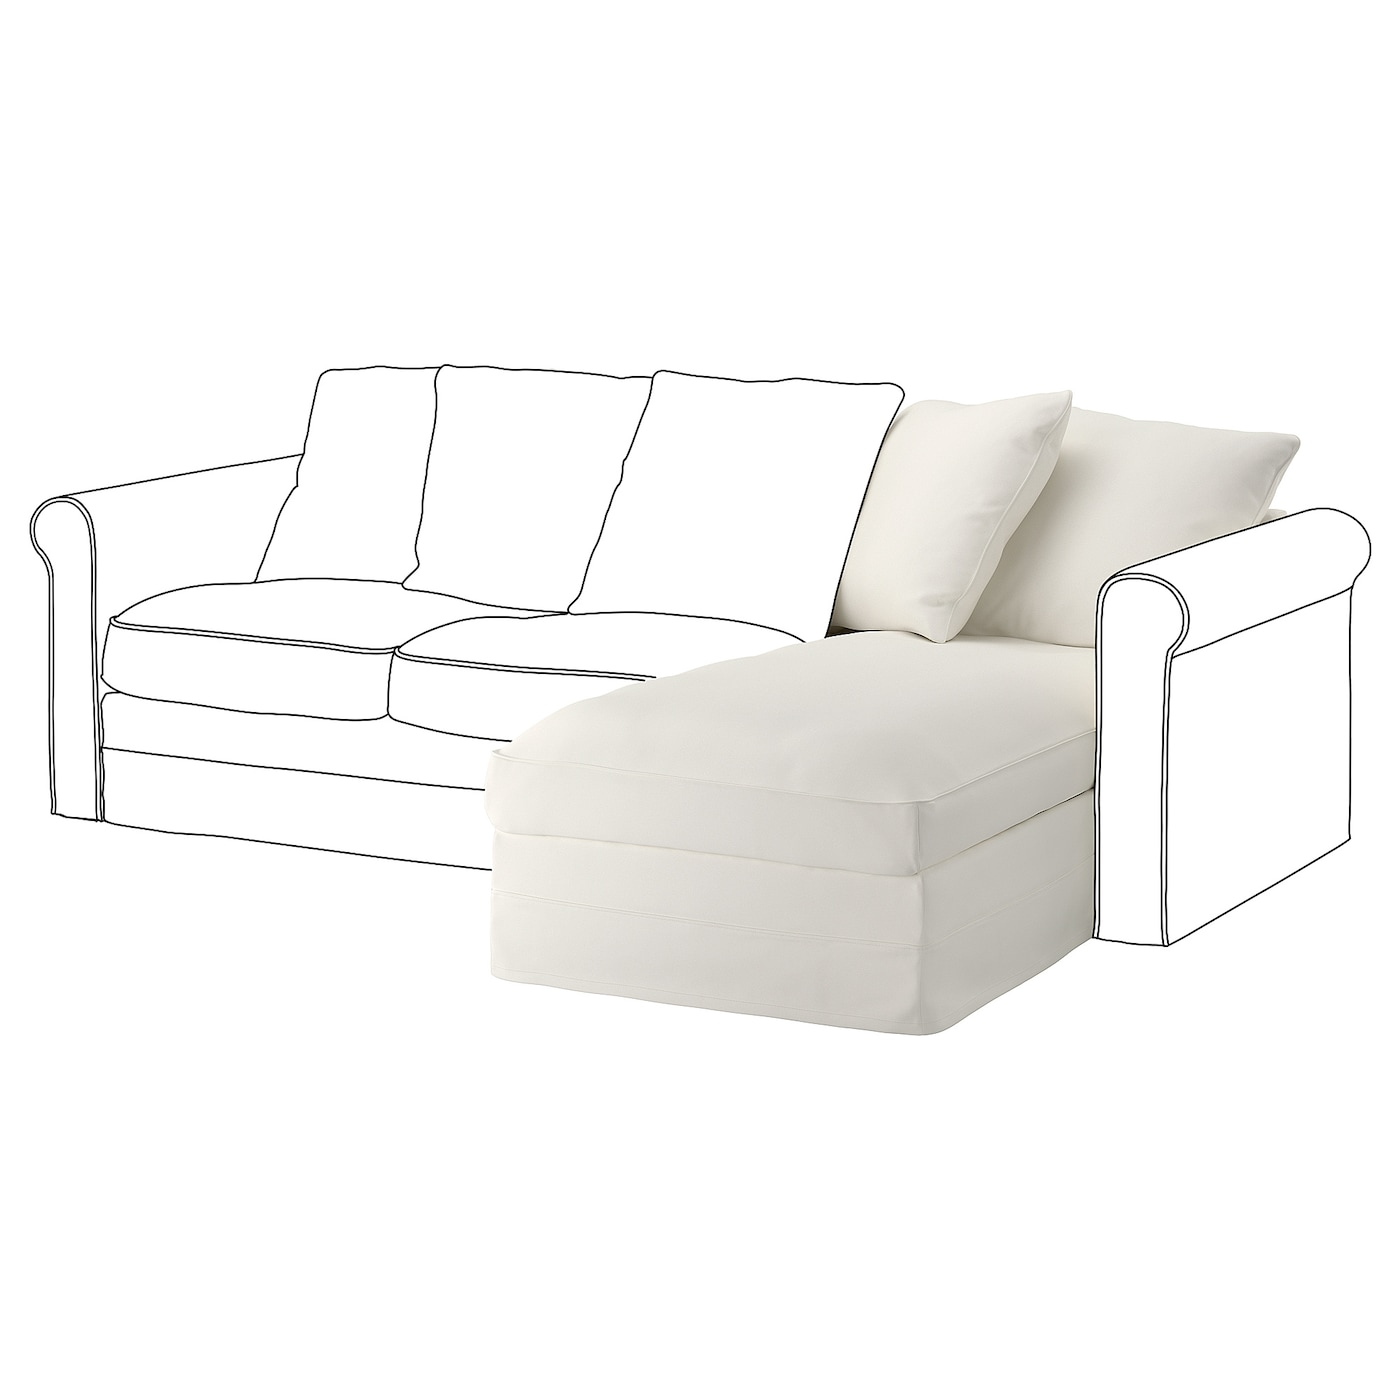 IKEA GRÖNLID chaise longue element